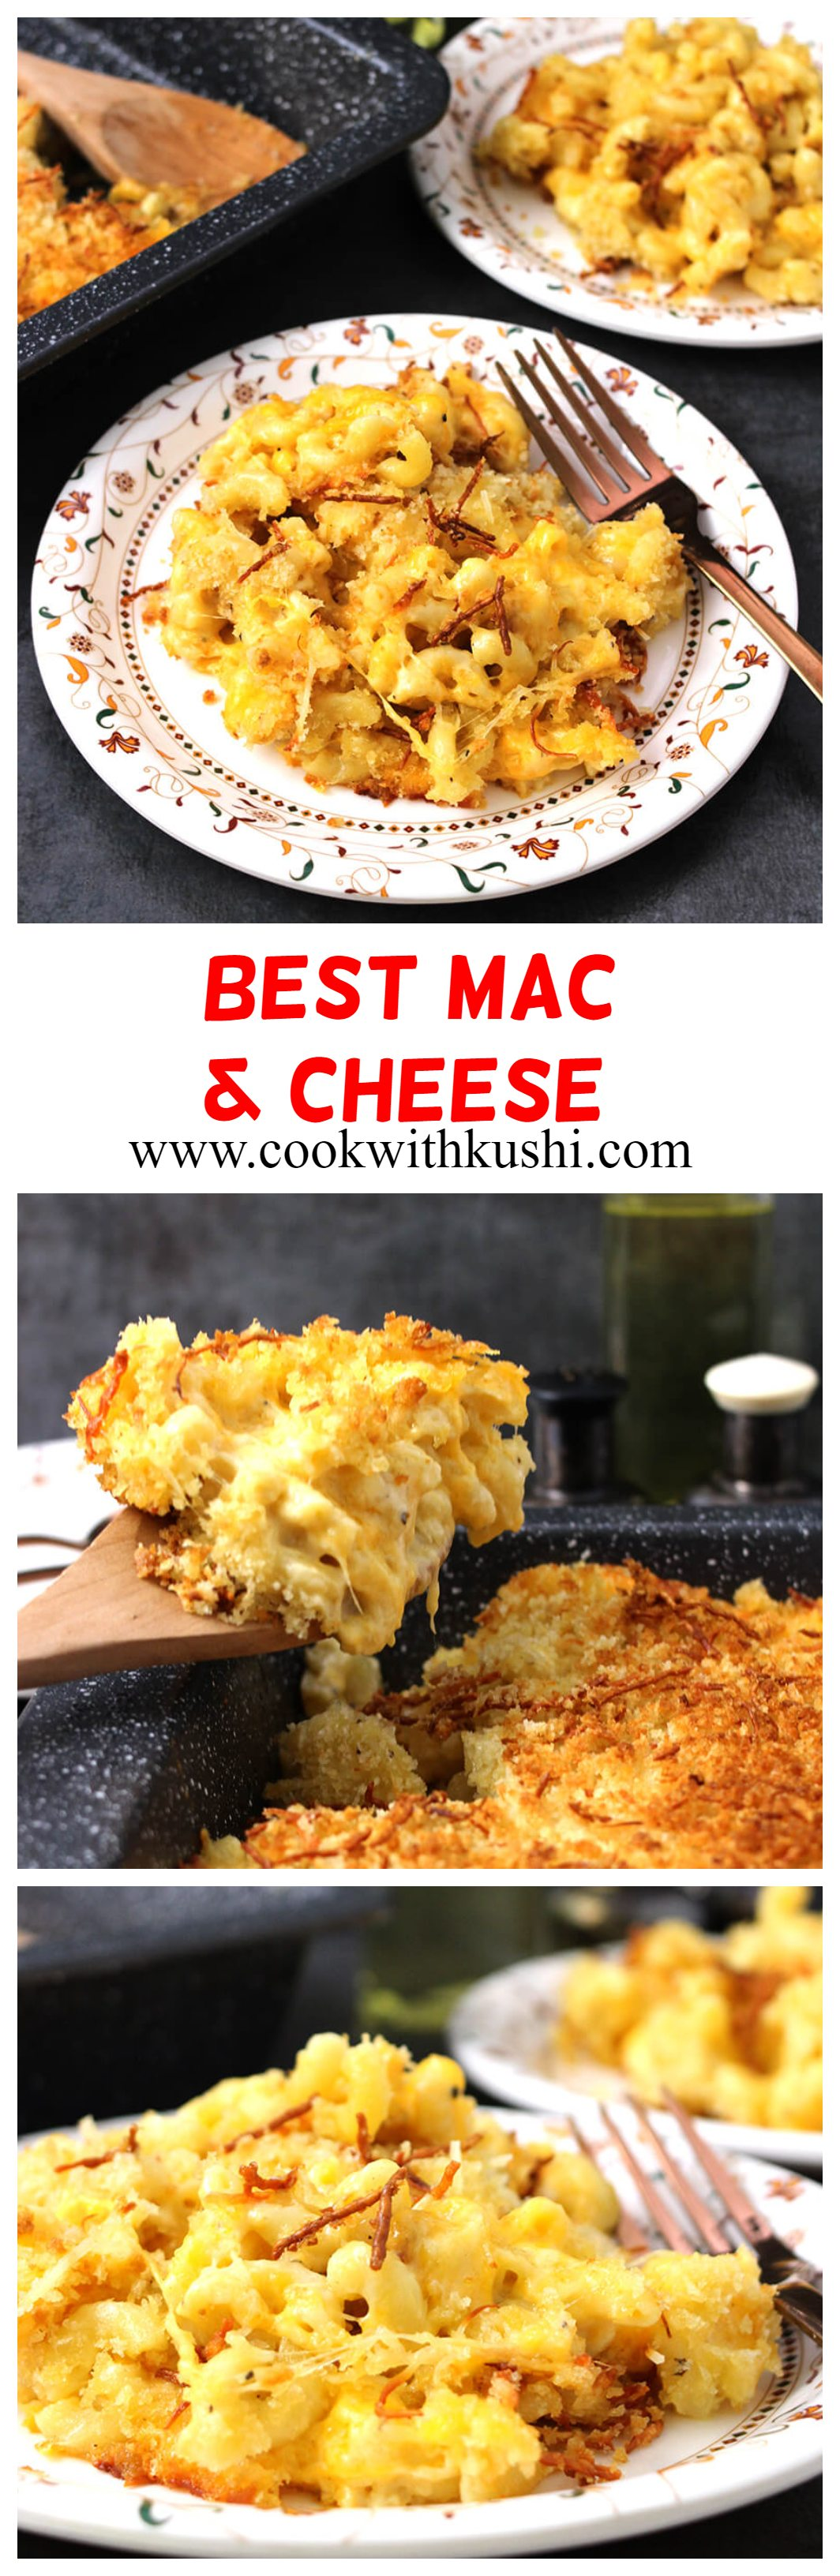 Mac and Cheese (Macaroni and Cheese) is a classic, rich and creamy cheesy deliciousness topped with crunchy topping that will satisfy all your taste buds and cheese cravings. The best Mac and Cheese you will ever make #bestmacandcheese #bakedmacandcheese #pastarecipes #cheeserecipes #summerrecipes #dinnerrecipes #lunchboxideas #partyfood #kidsfavorite.